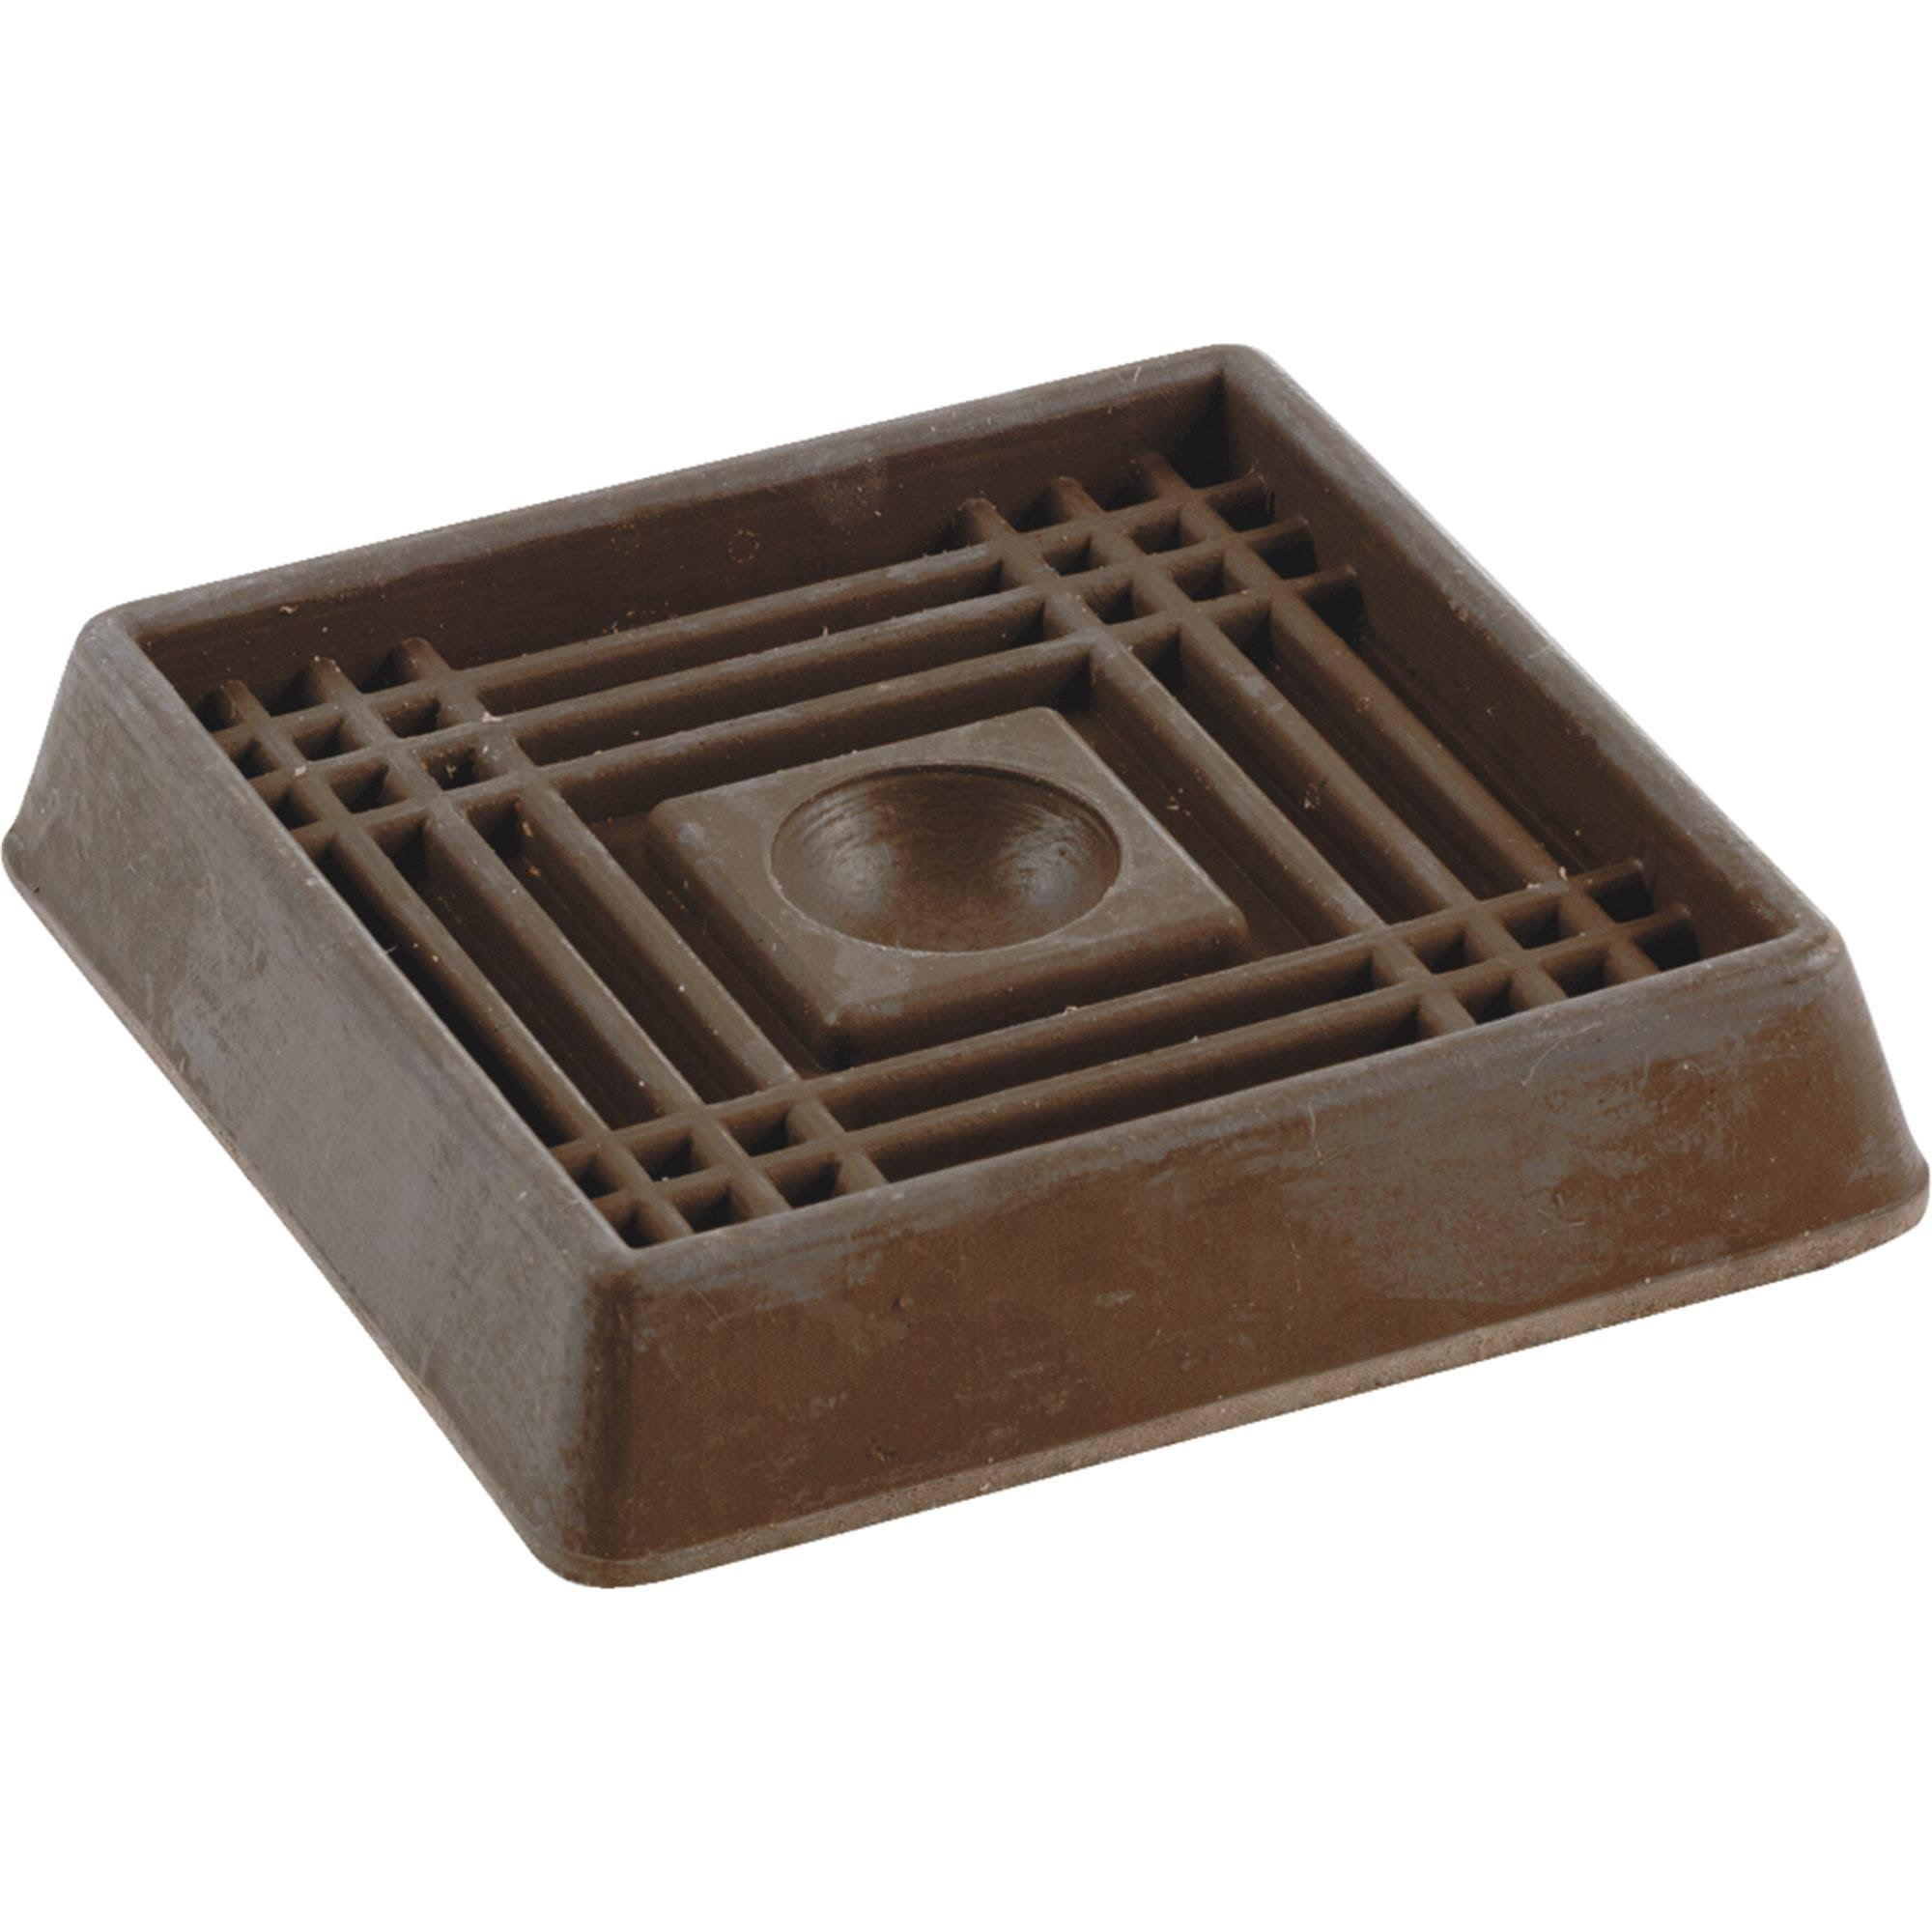 "Shepherd Hardware Caster Cup - 2"", Brown, Square"